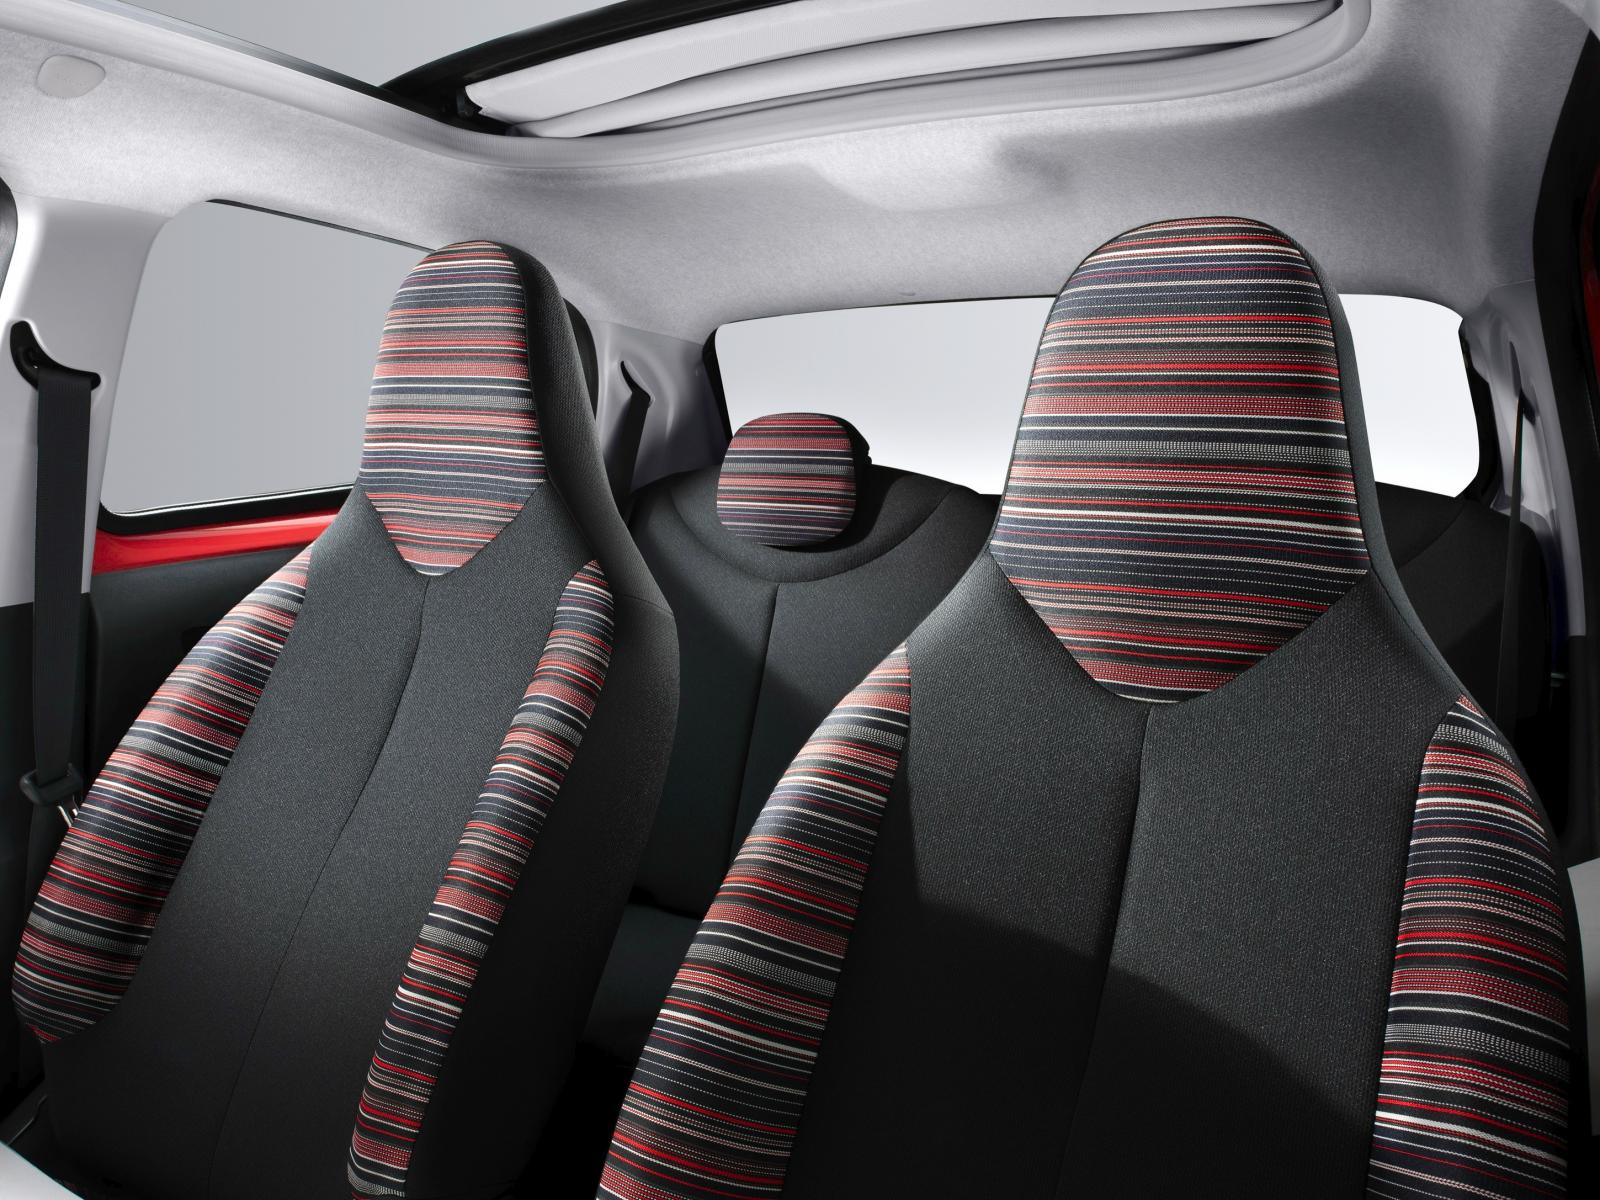 C1 Airscape Feel Edition 2014 front seats